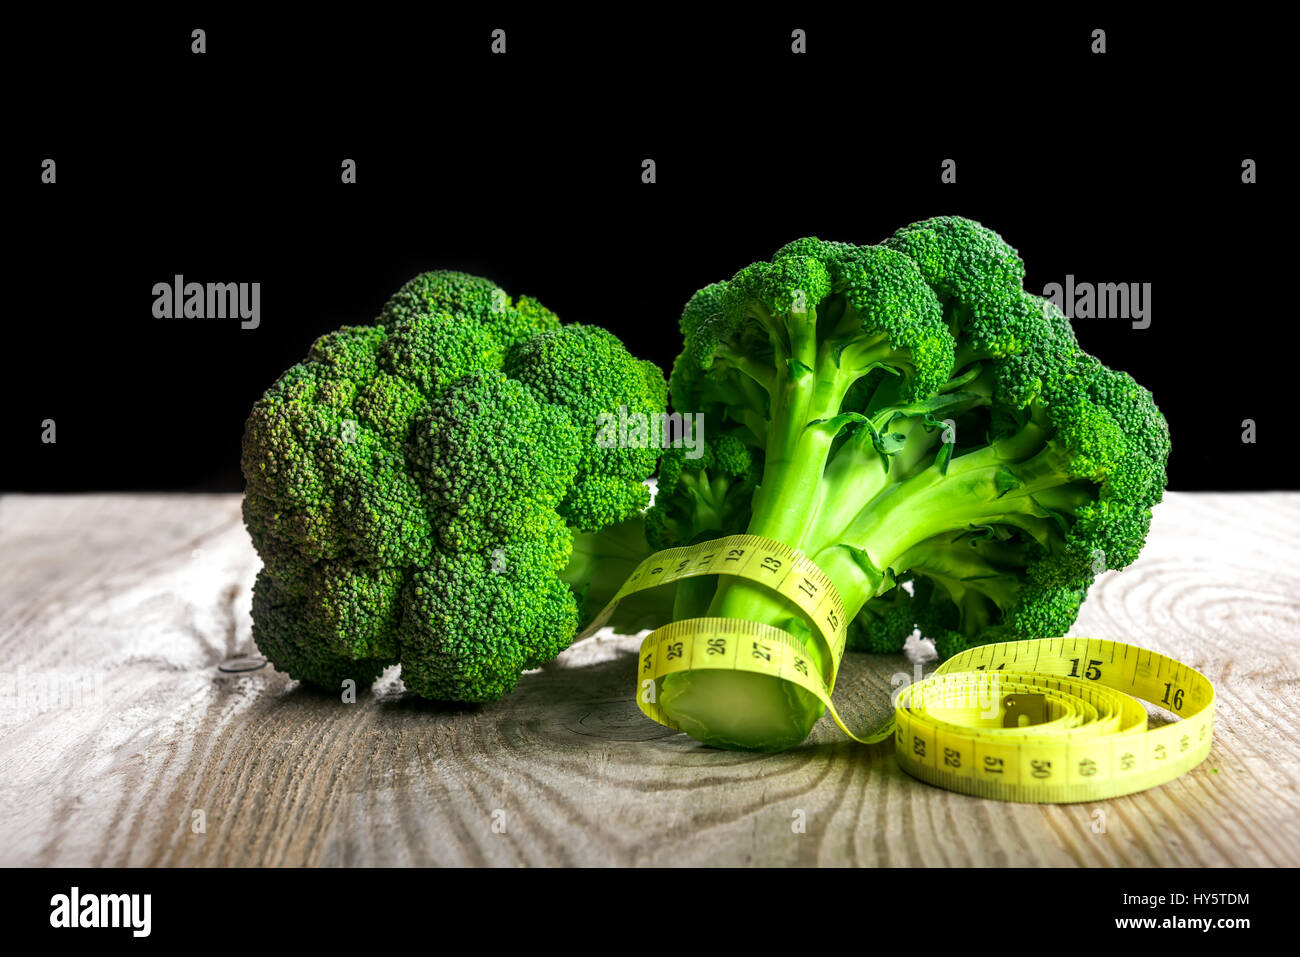 Vegetables Diet for weight loss - Stock Image